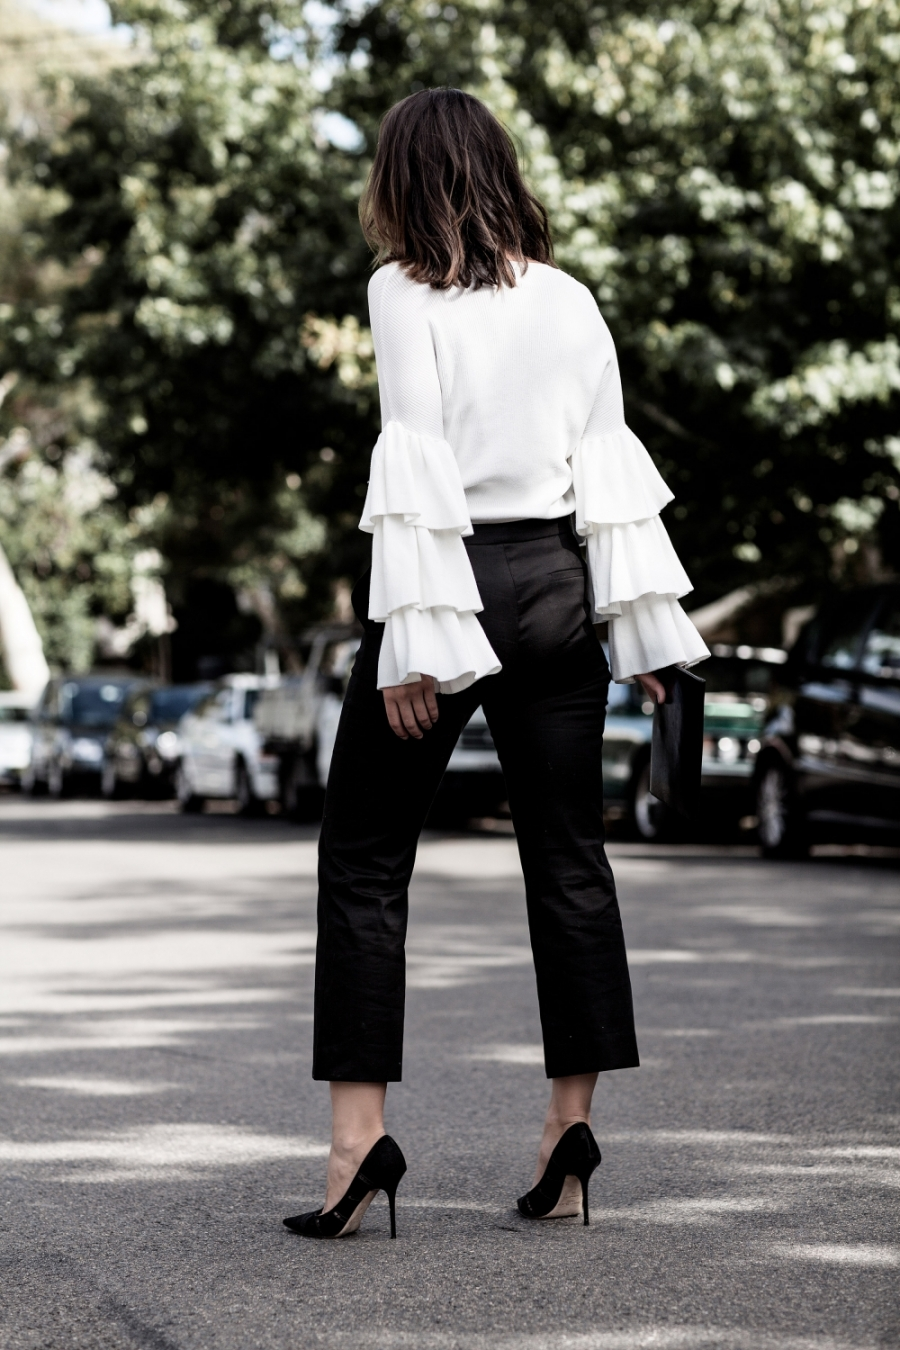 harper-and-harley_ruffle-white-top-sleeves_cropped-pants_style_outfit_3-mmvyse4emibxyq4fzsqsjaj8821ks4wdt3twr68530